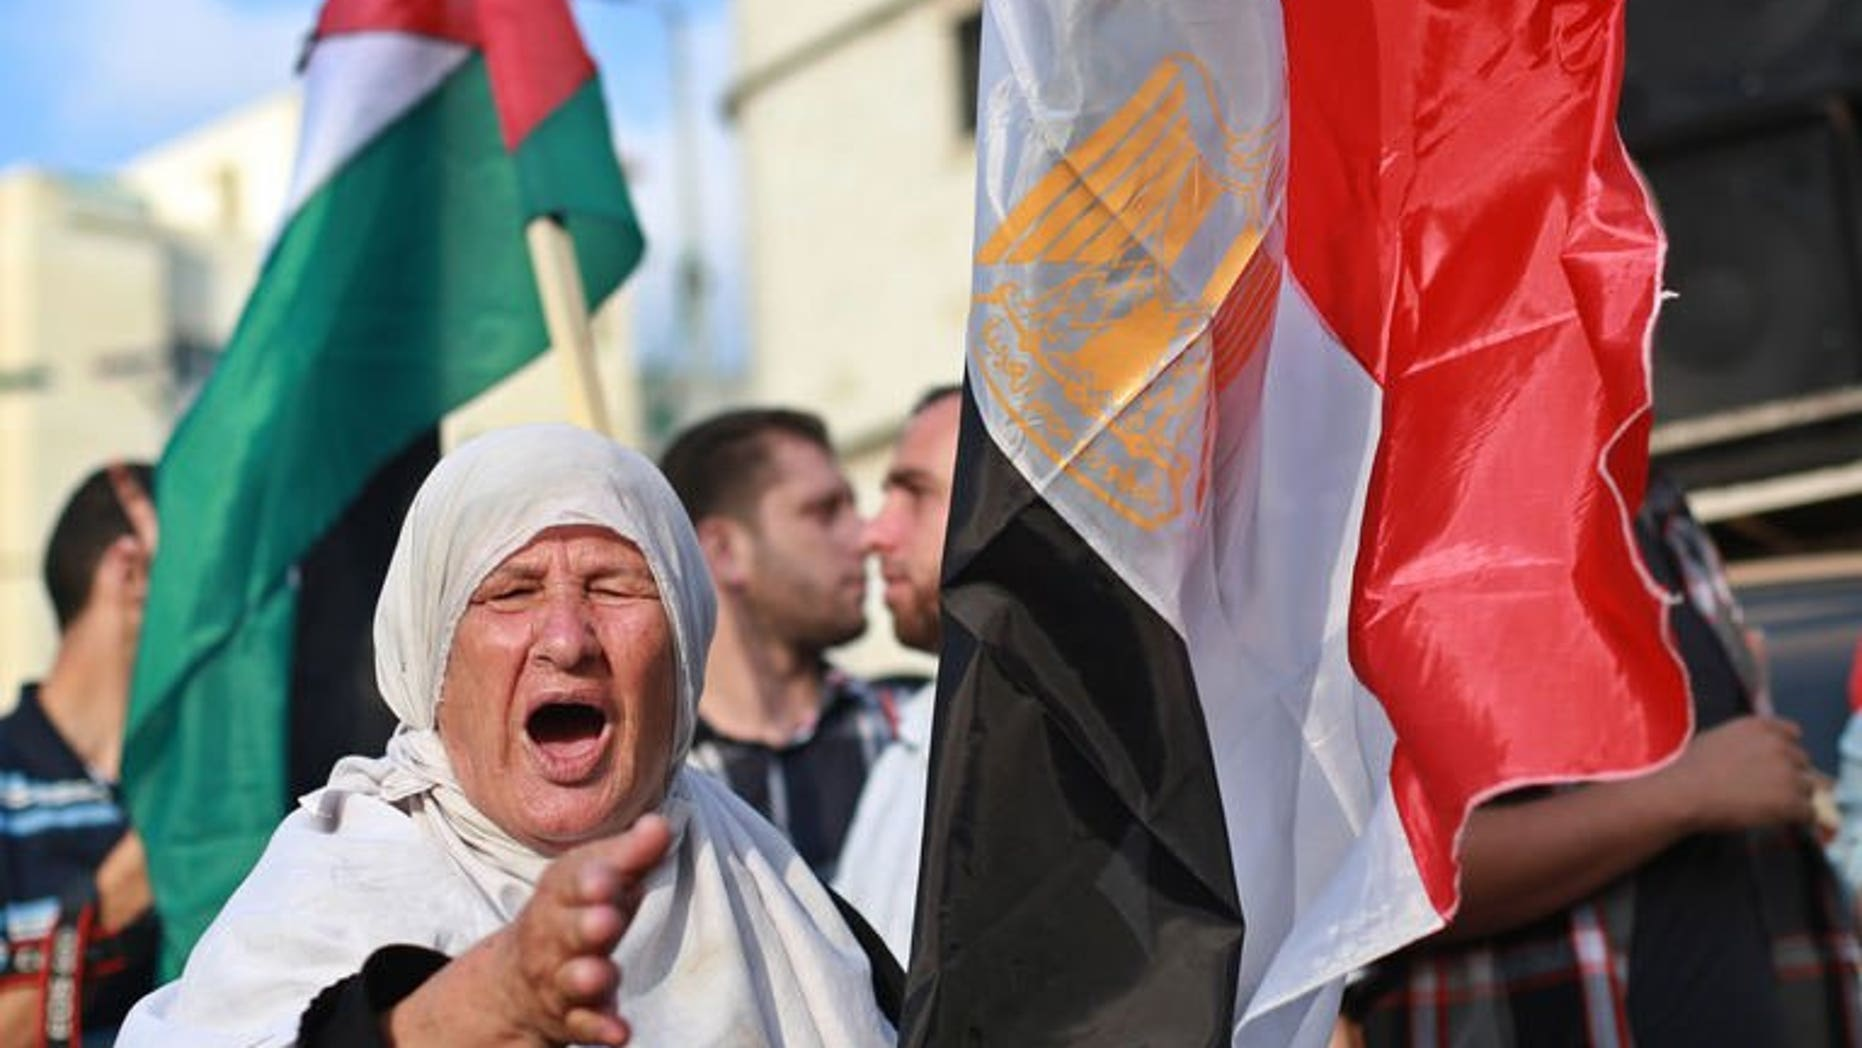 """A Palestinian supporter of ousted Egyptian president Mohamed Morsi, shouts slogans as she stands in between the Egyptian (R) and Palestinian flags during a protest against the violence in the Egyptian capital on August 14, 2013, in Gaza City. The Palestinian Islamist movement Hamas condemned Egypt's bloody crackdown on supporters of ousted president Mohammed Morsi as a """"terrible massacre."""""""